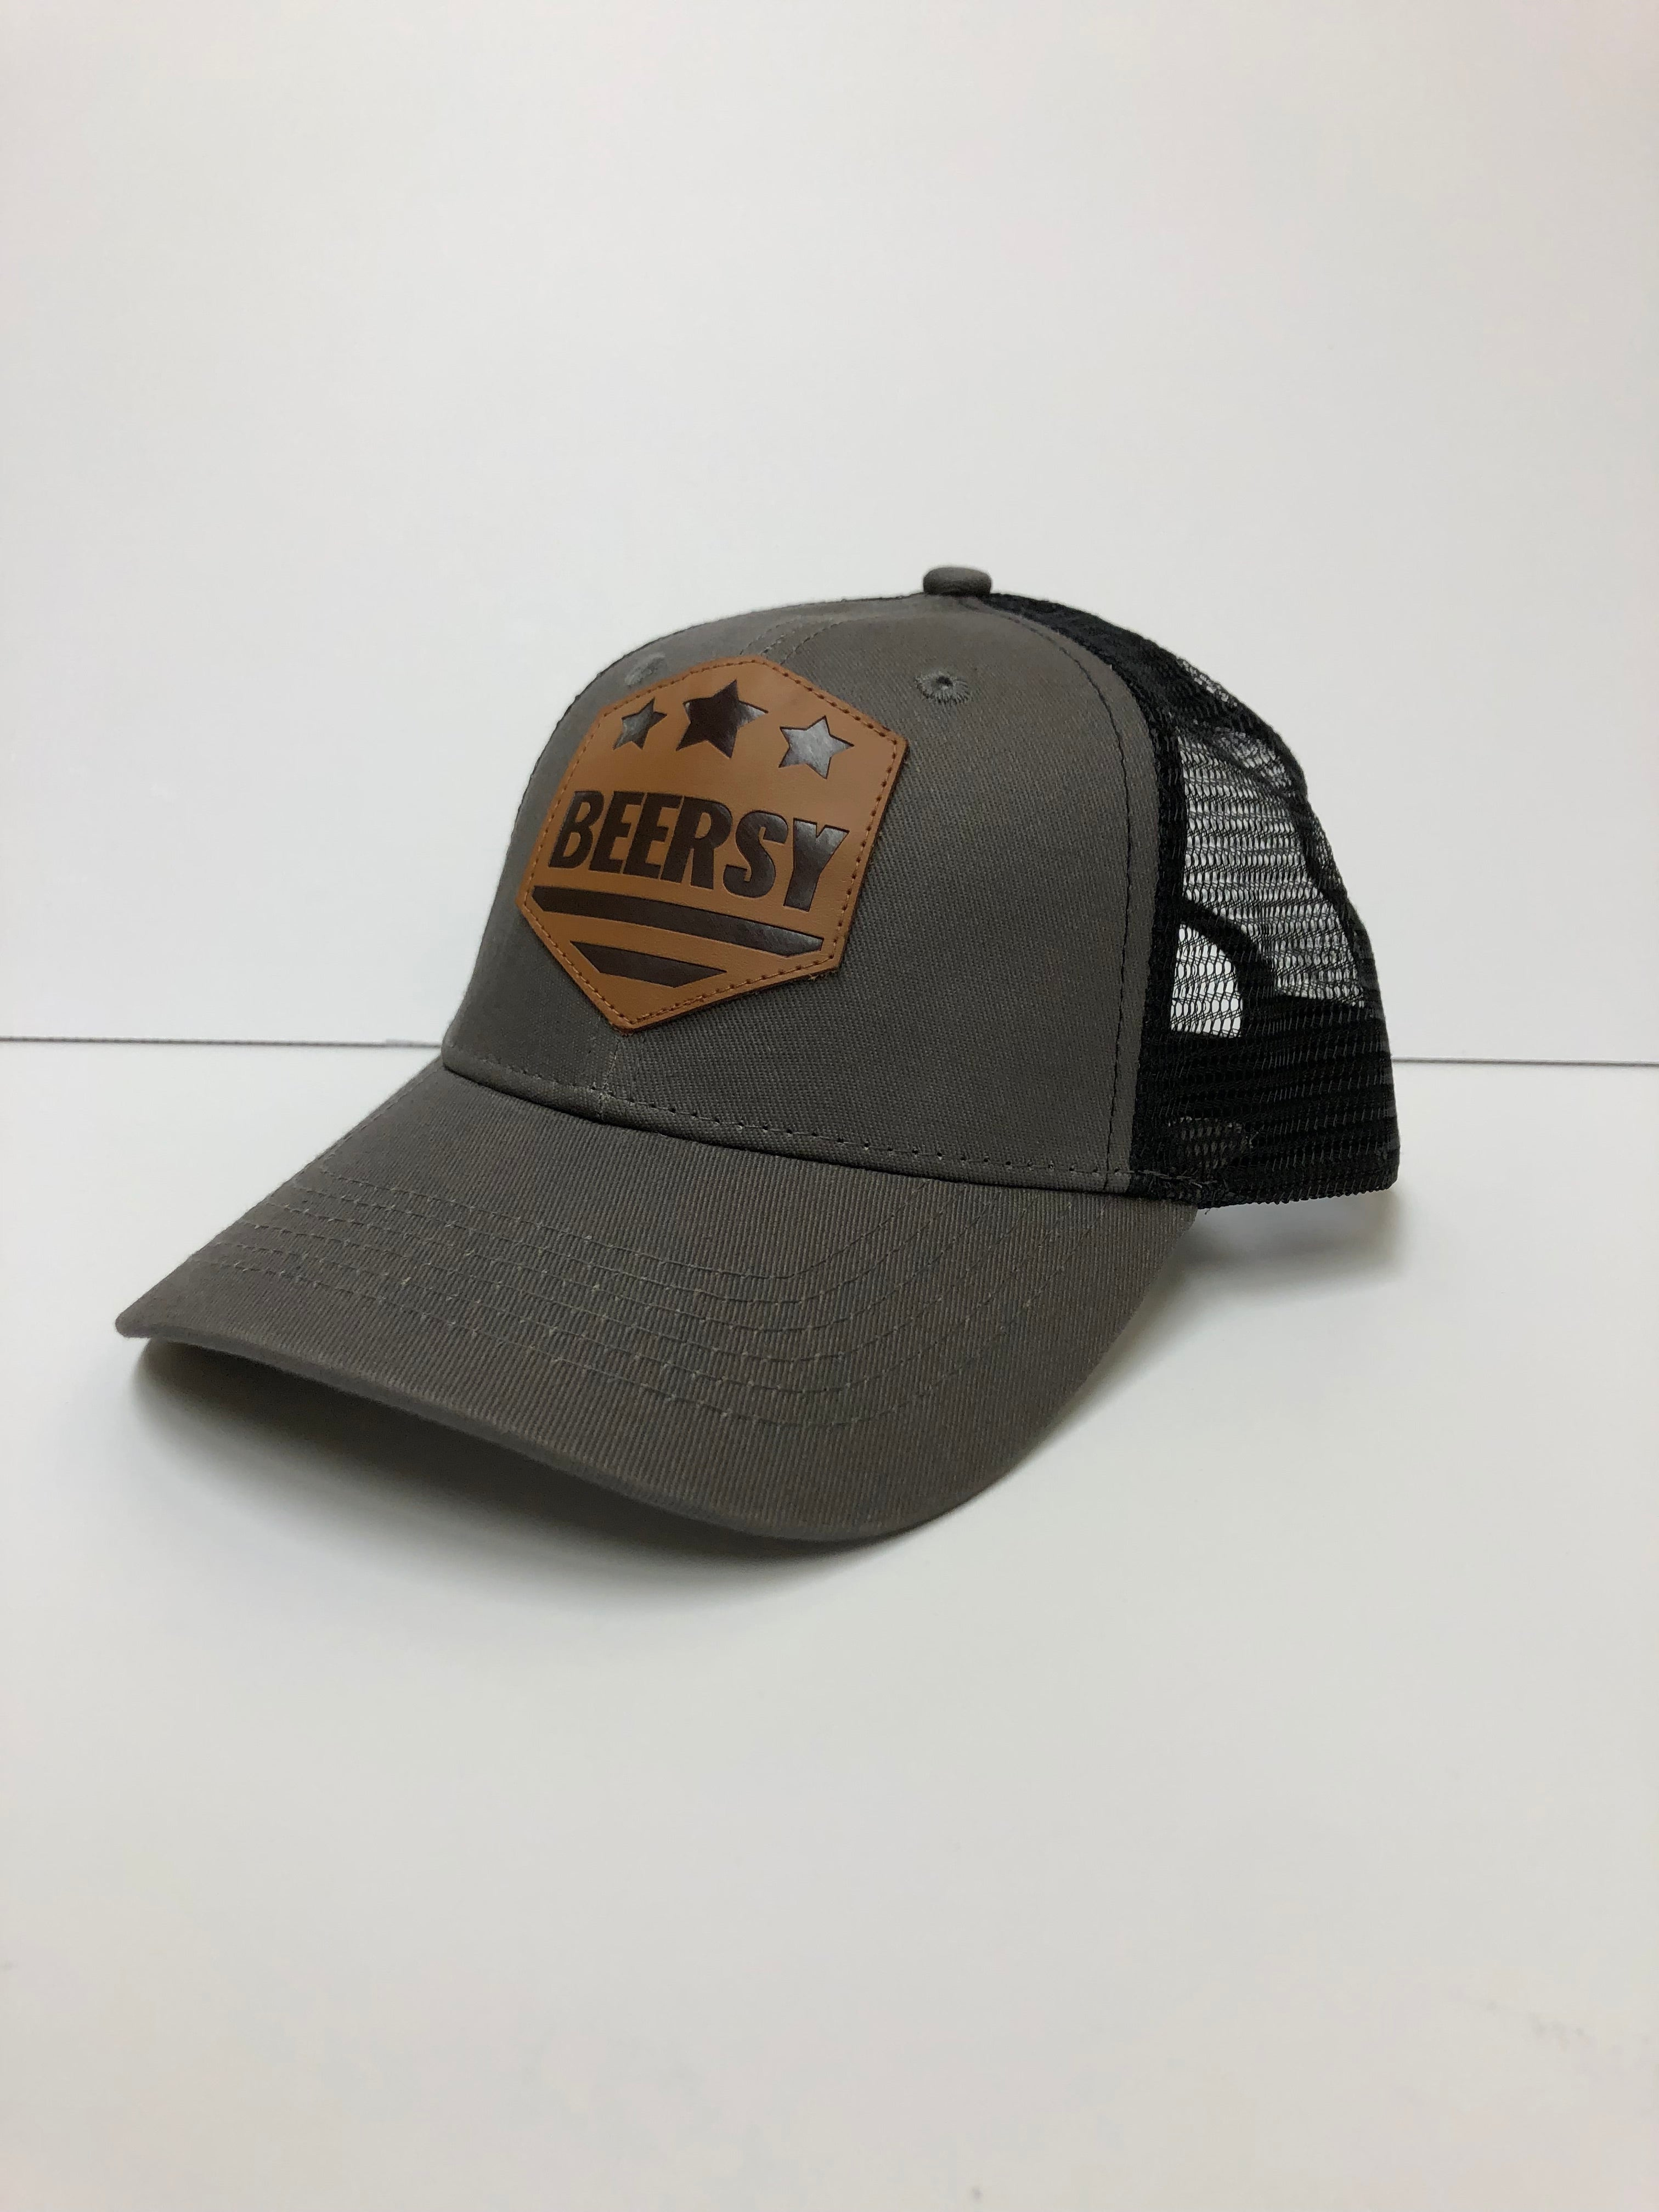 Beersy's Branded Merch and Apparel